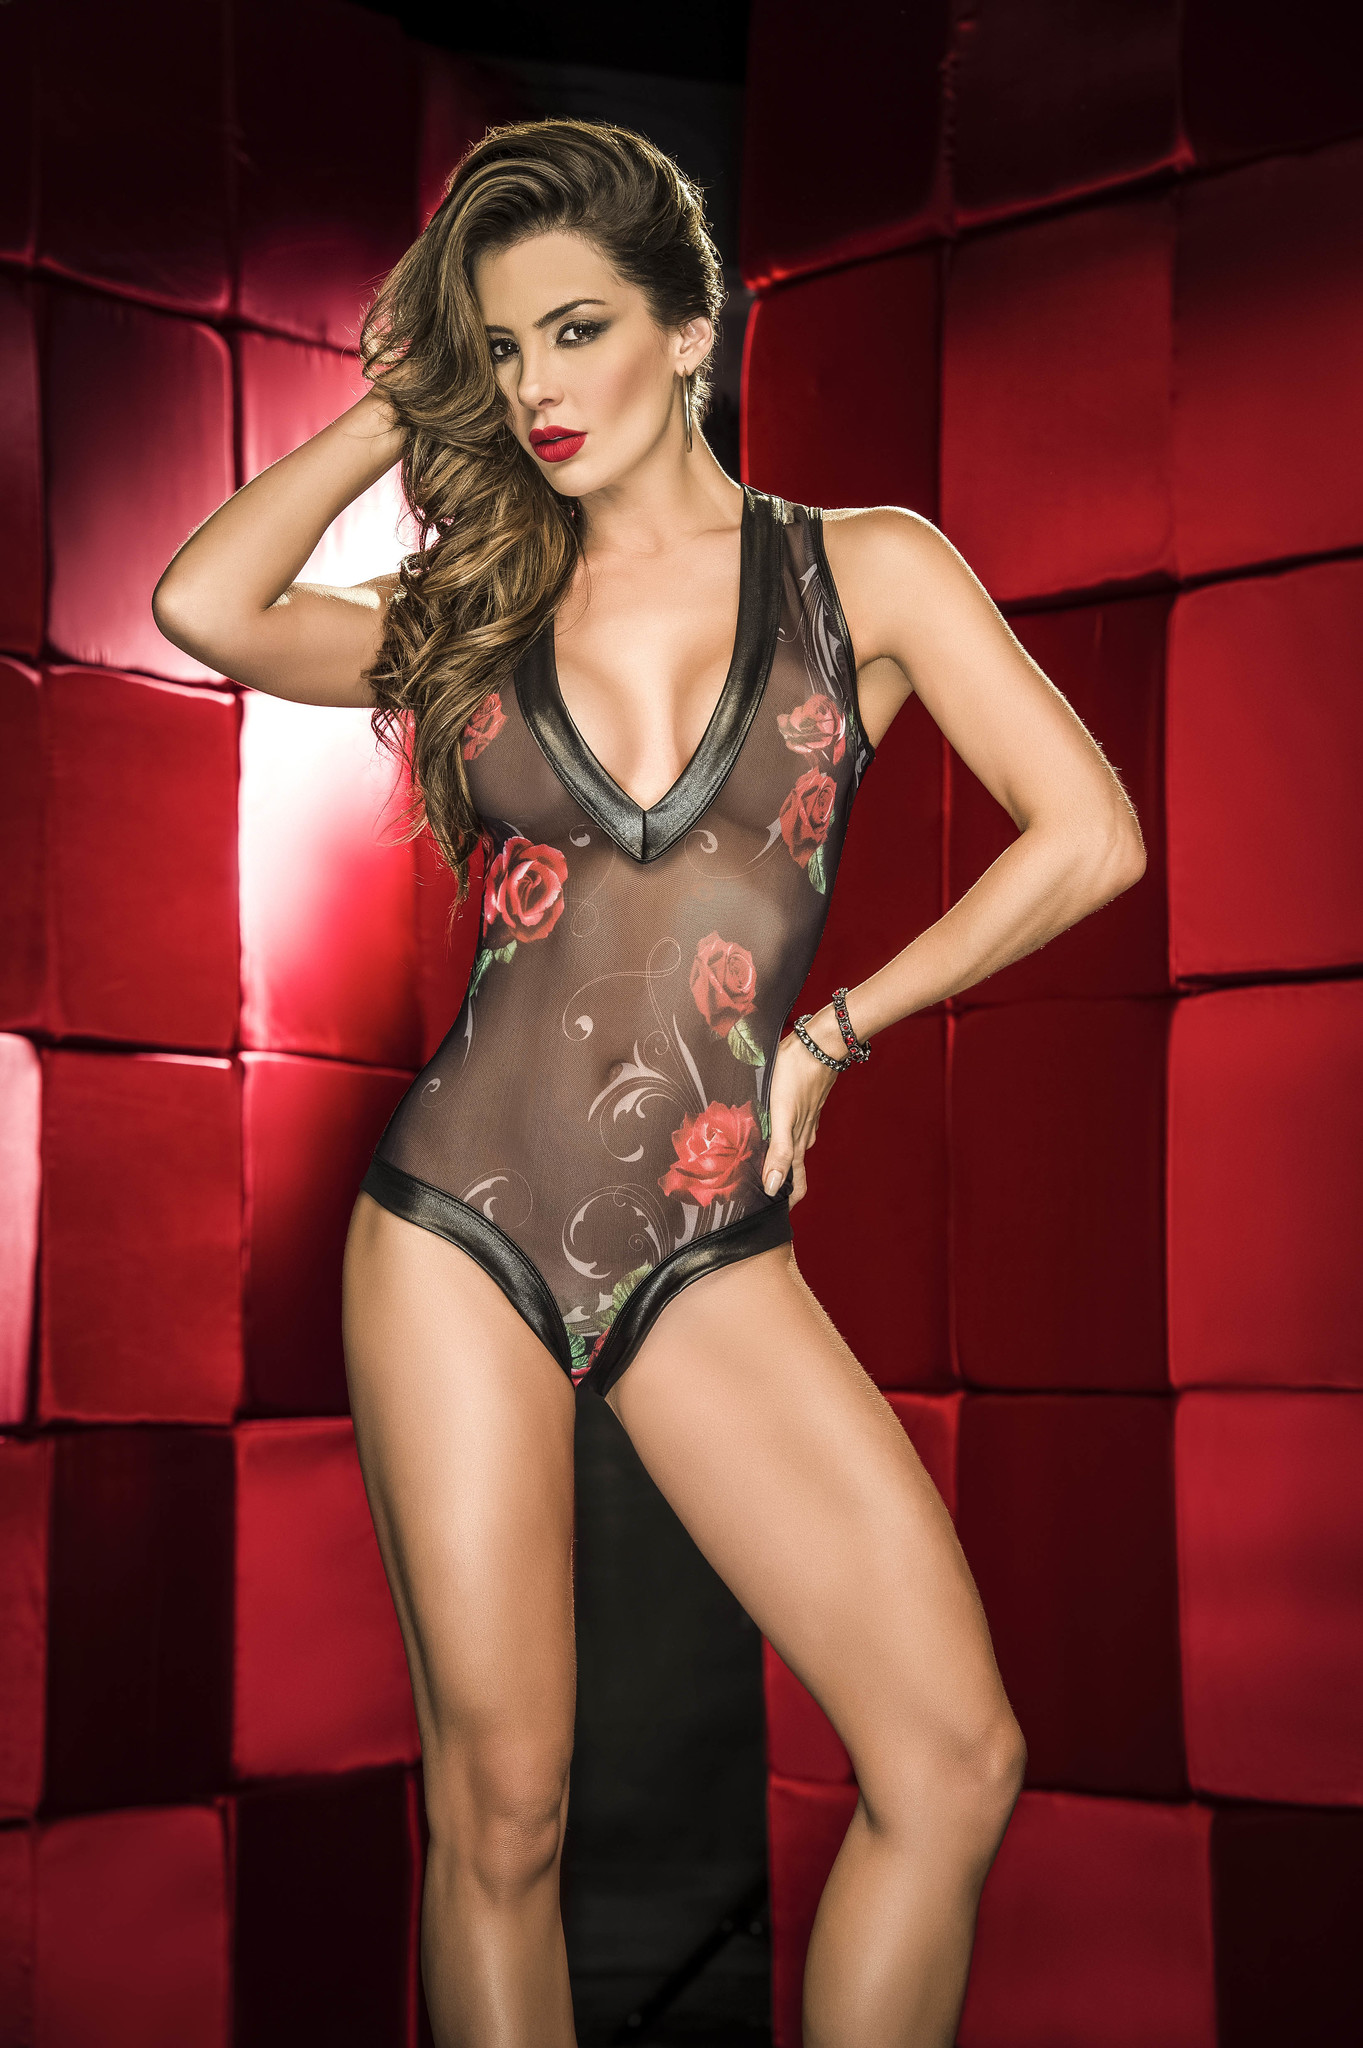 4e32b442bd Our Wet Roses Teddy is BACK!!! This one is my personal favorite. I have  been patiently waiting for it s return and could not be more thrilled! How  could you ...